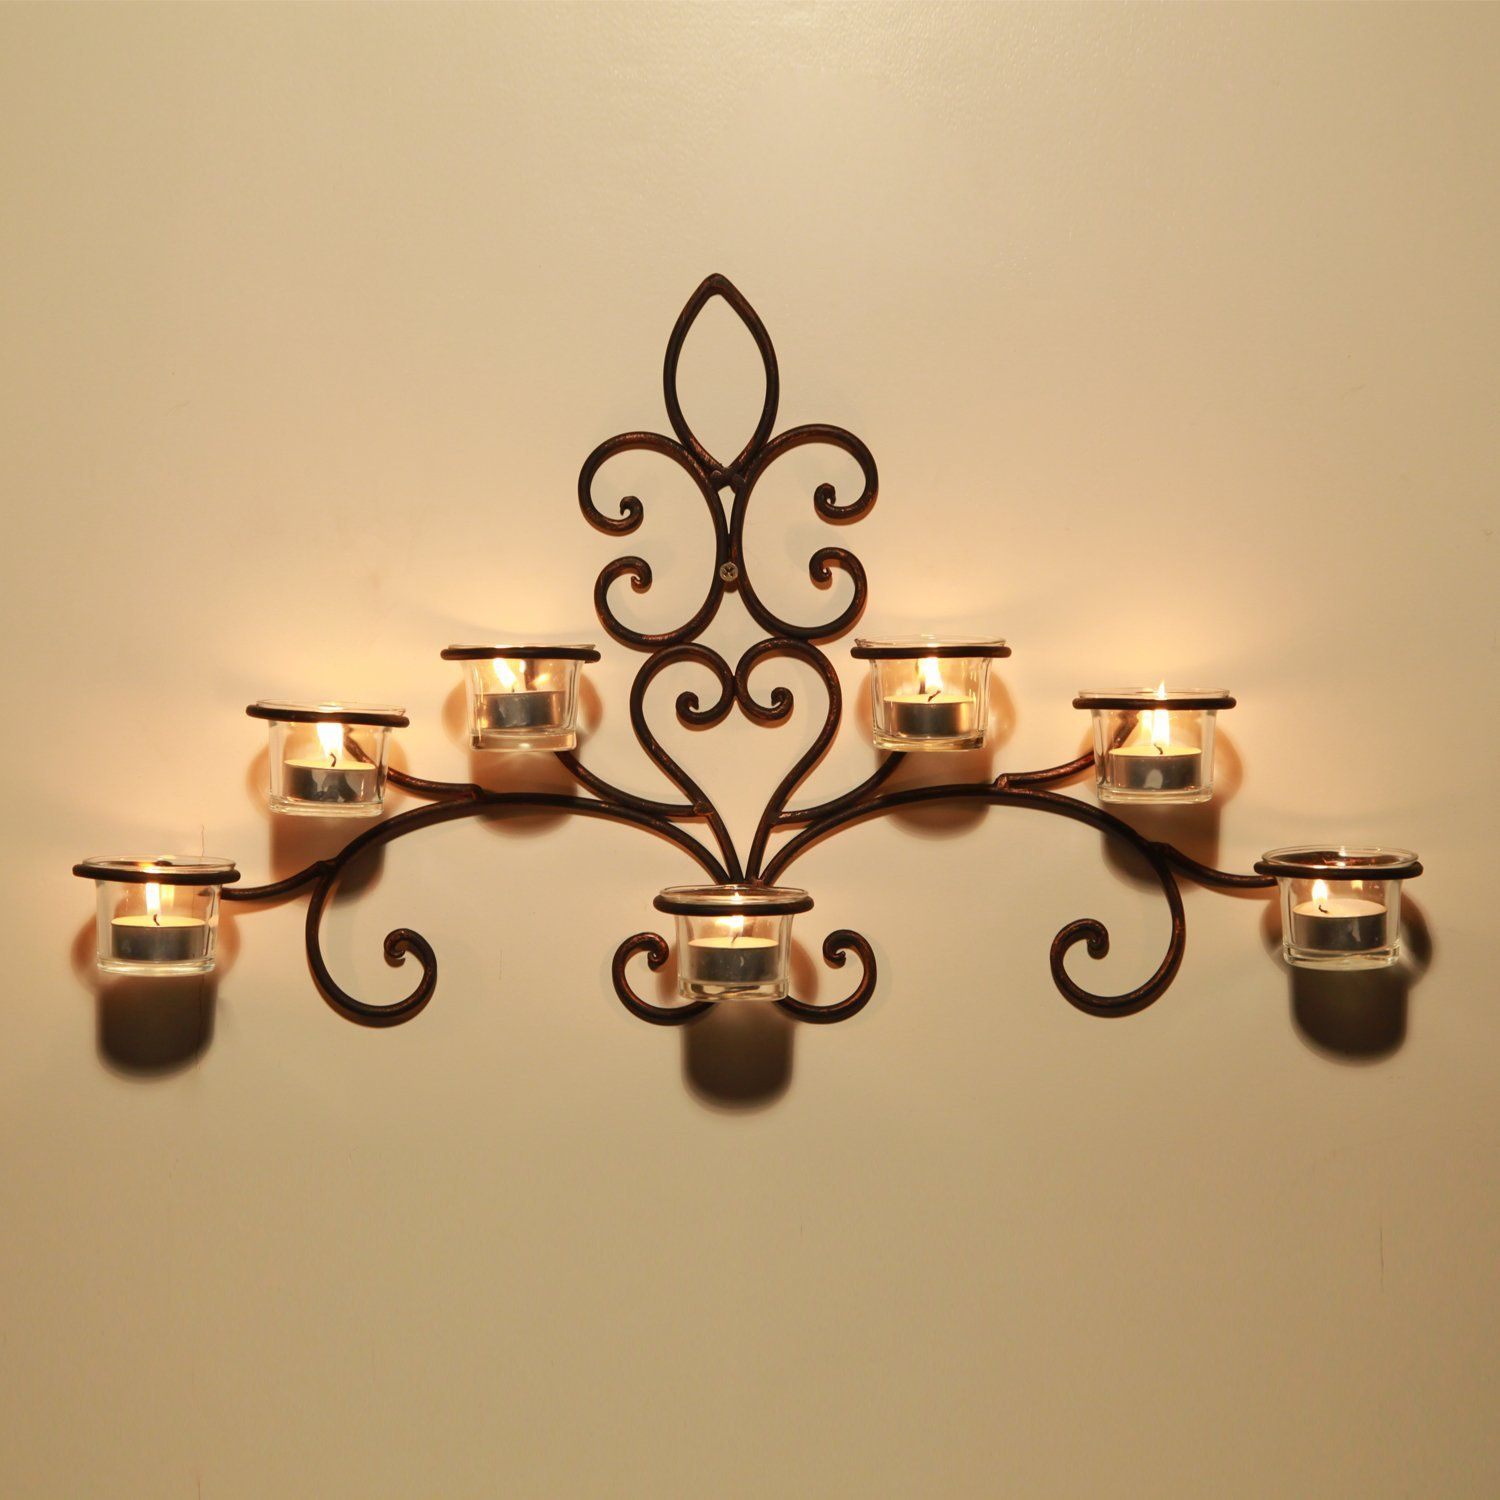 Adeco Iron And Glass Horizontal Wall Hanging Candle Holder Sconce ...